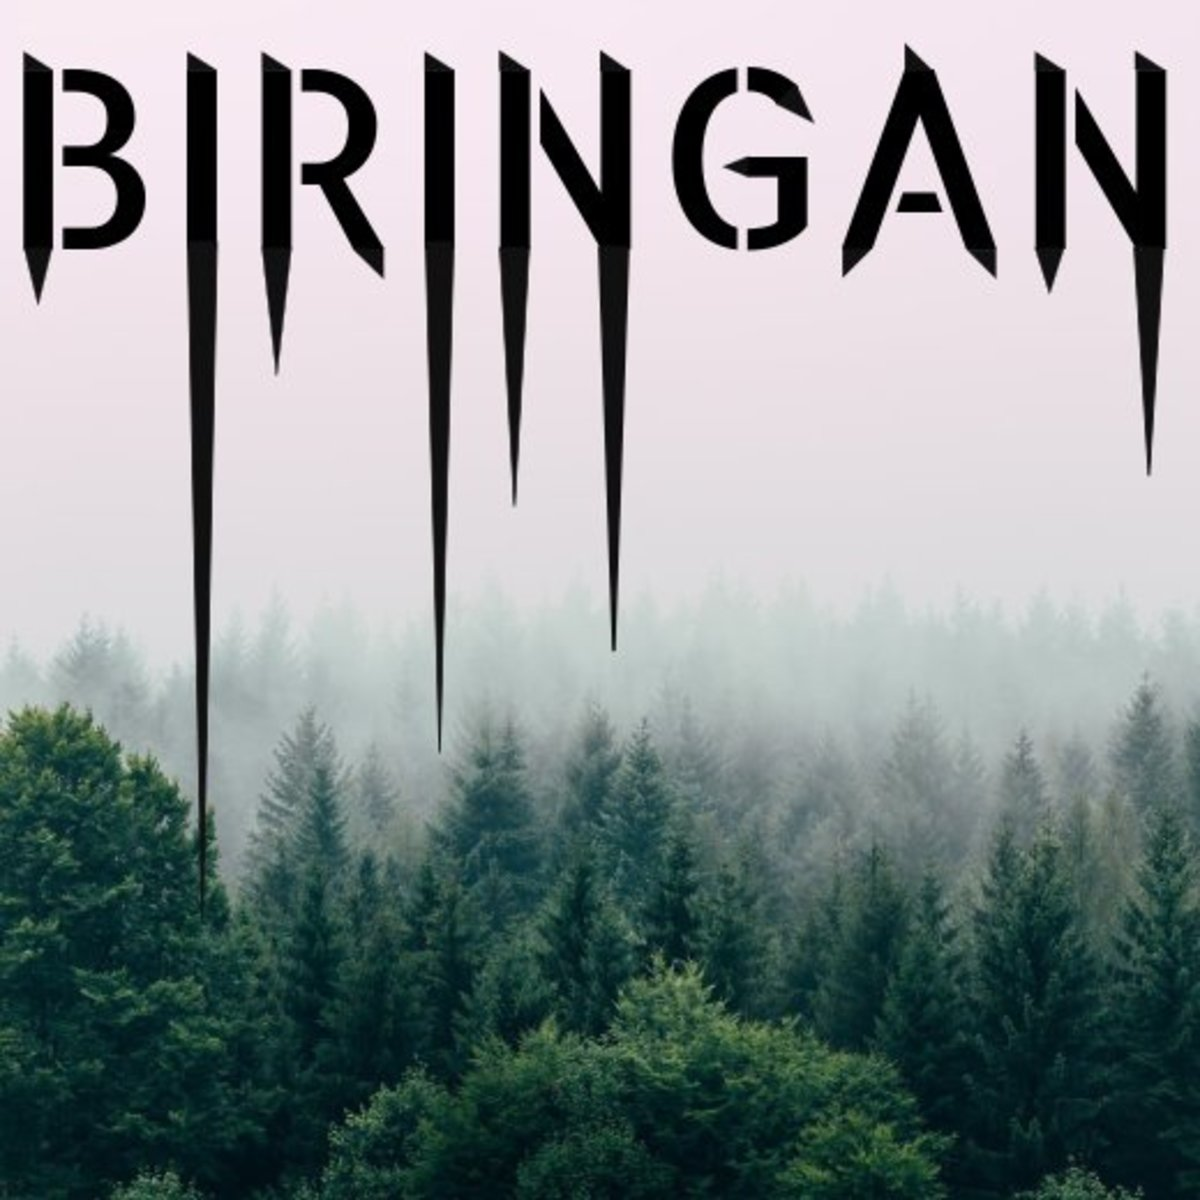 The Lost and Mysterious City of Biringan